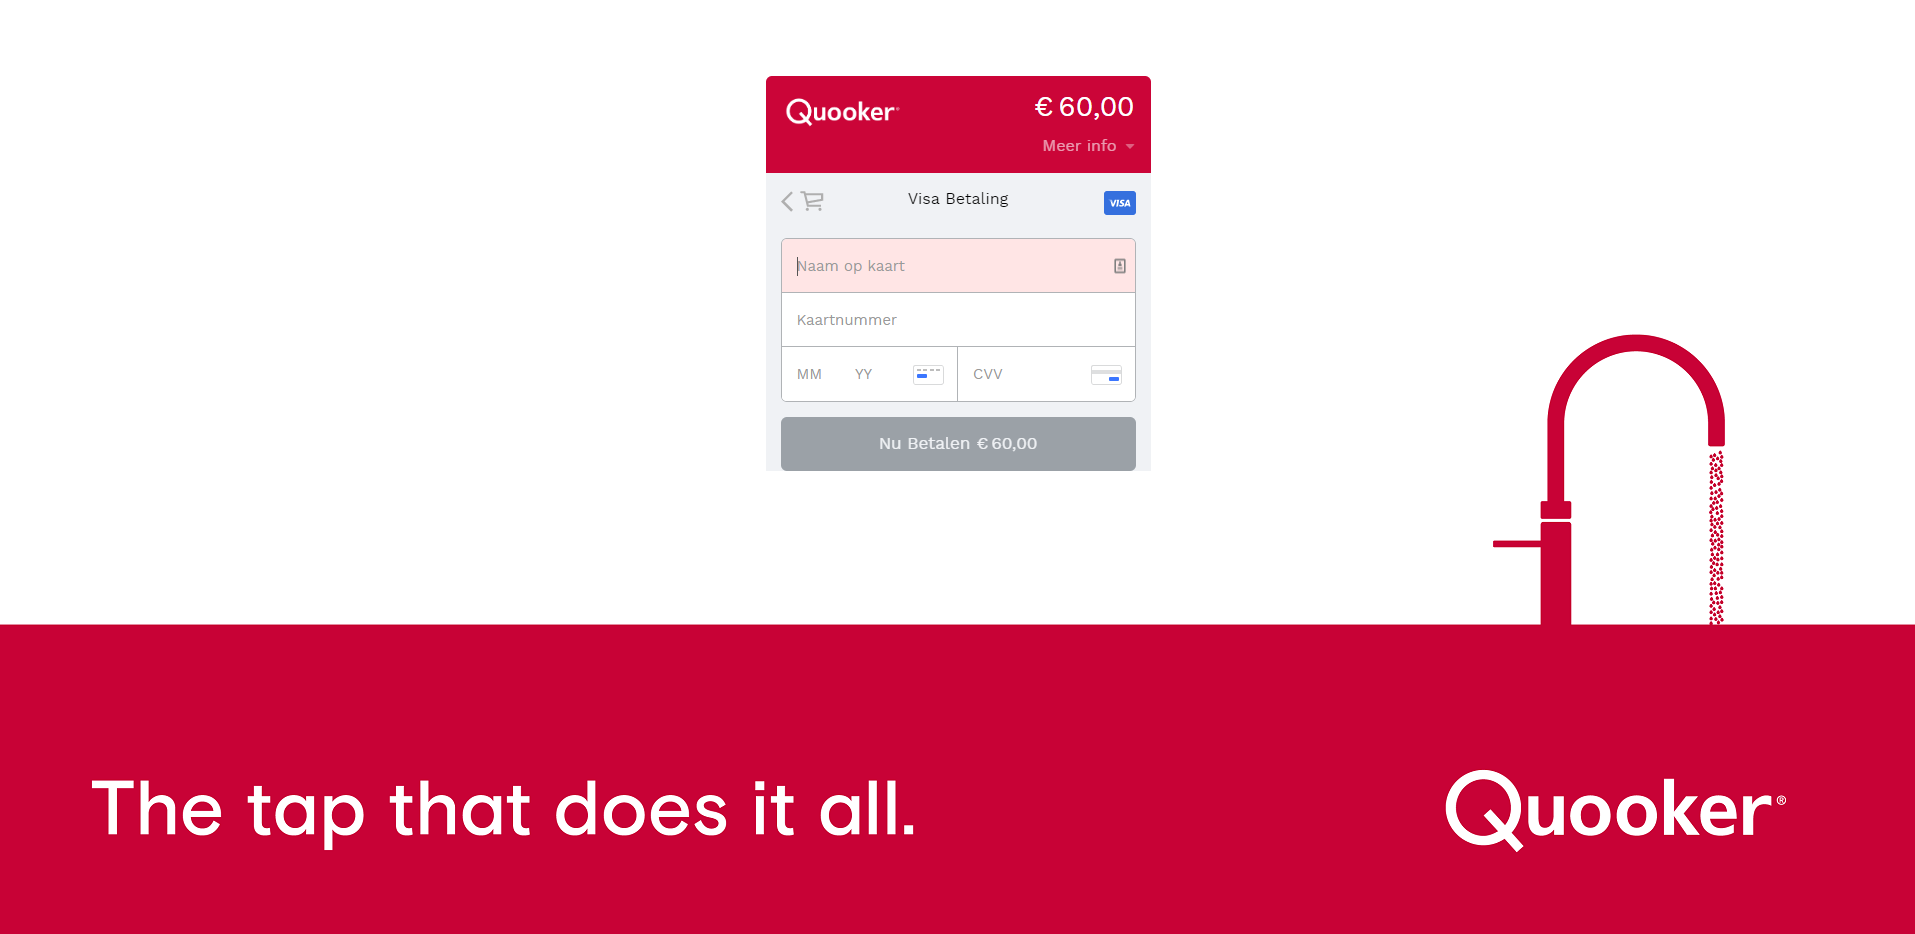 Quooker's Smart Checkout